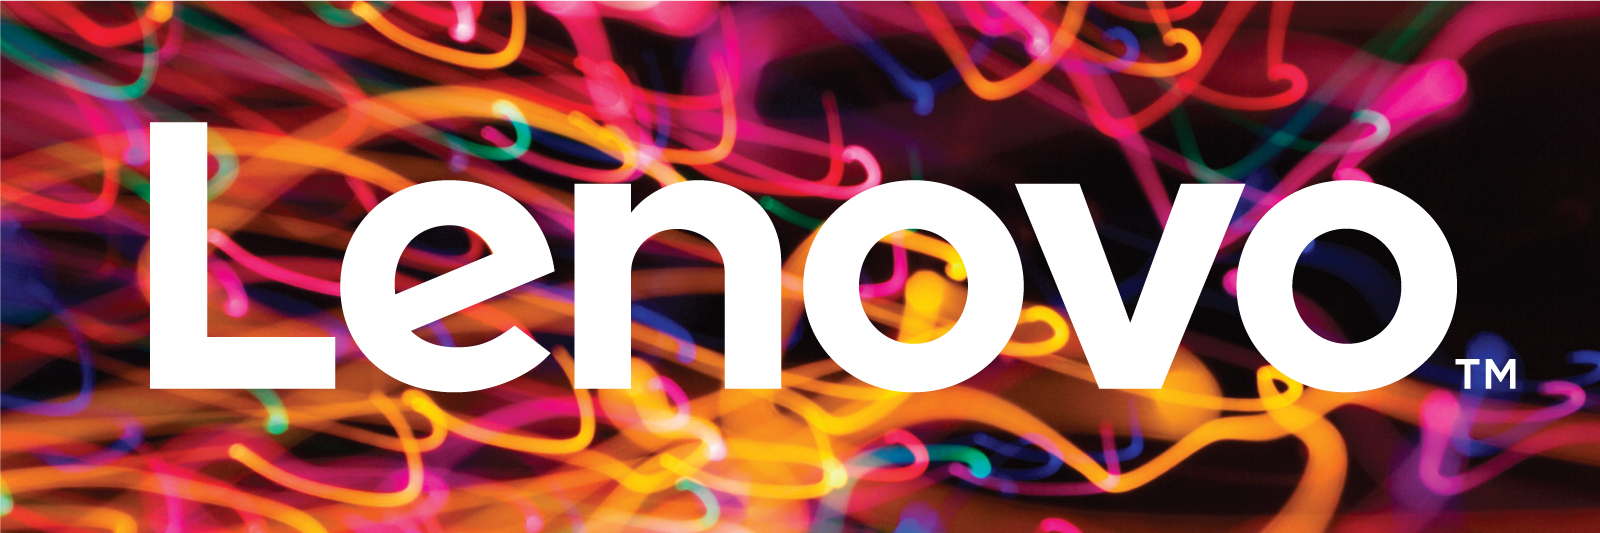 This Lenovo Image Logo is ideal for all brand applications.